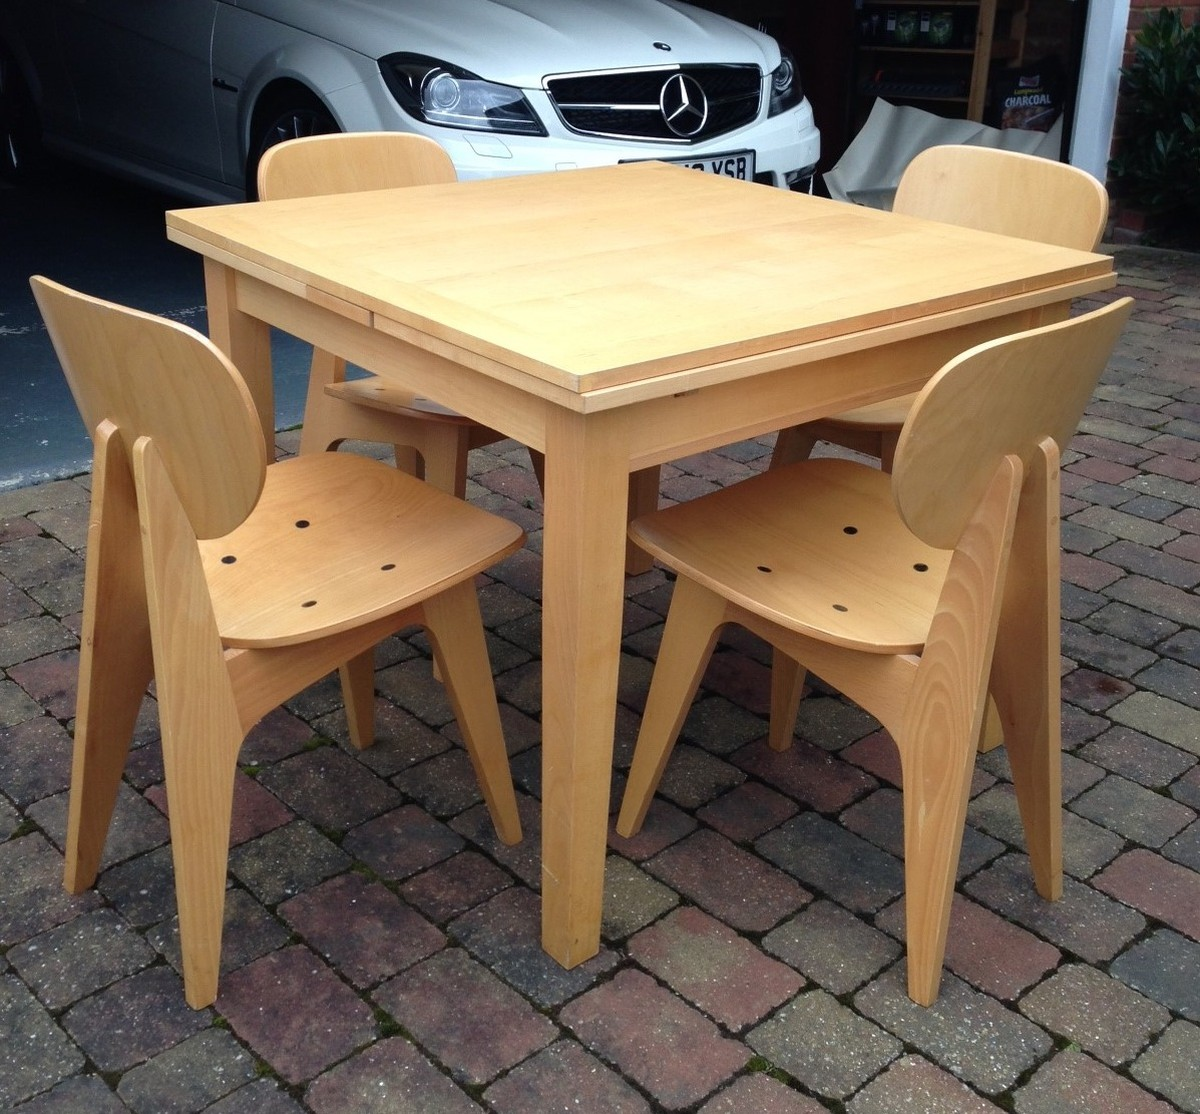 Secondhand chairs and tables home furniture second for Second hand table and chairs